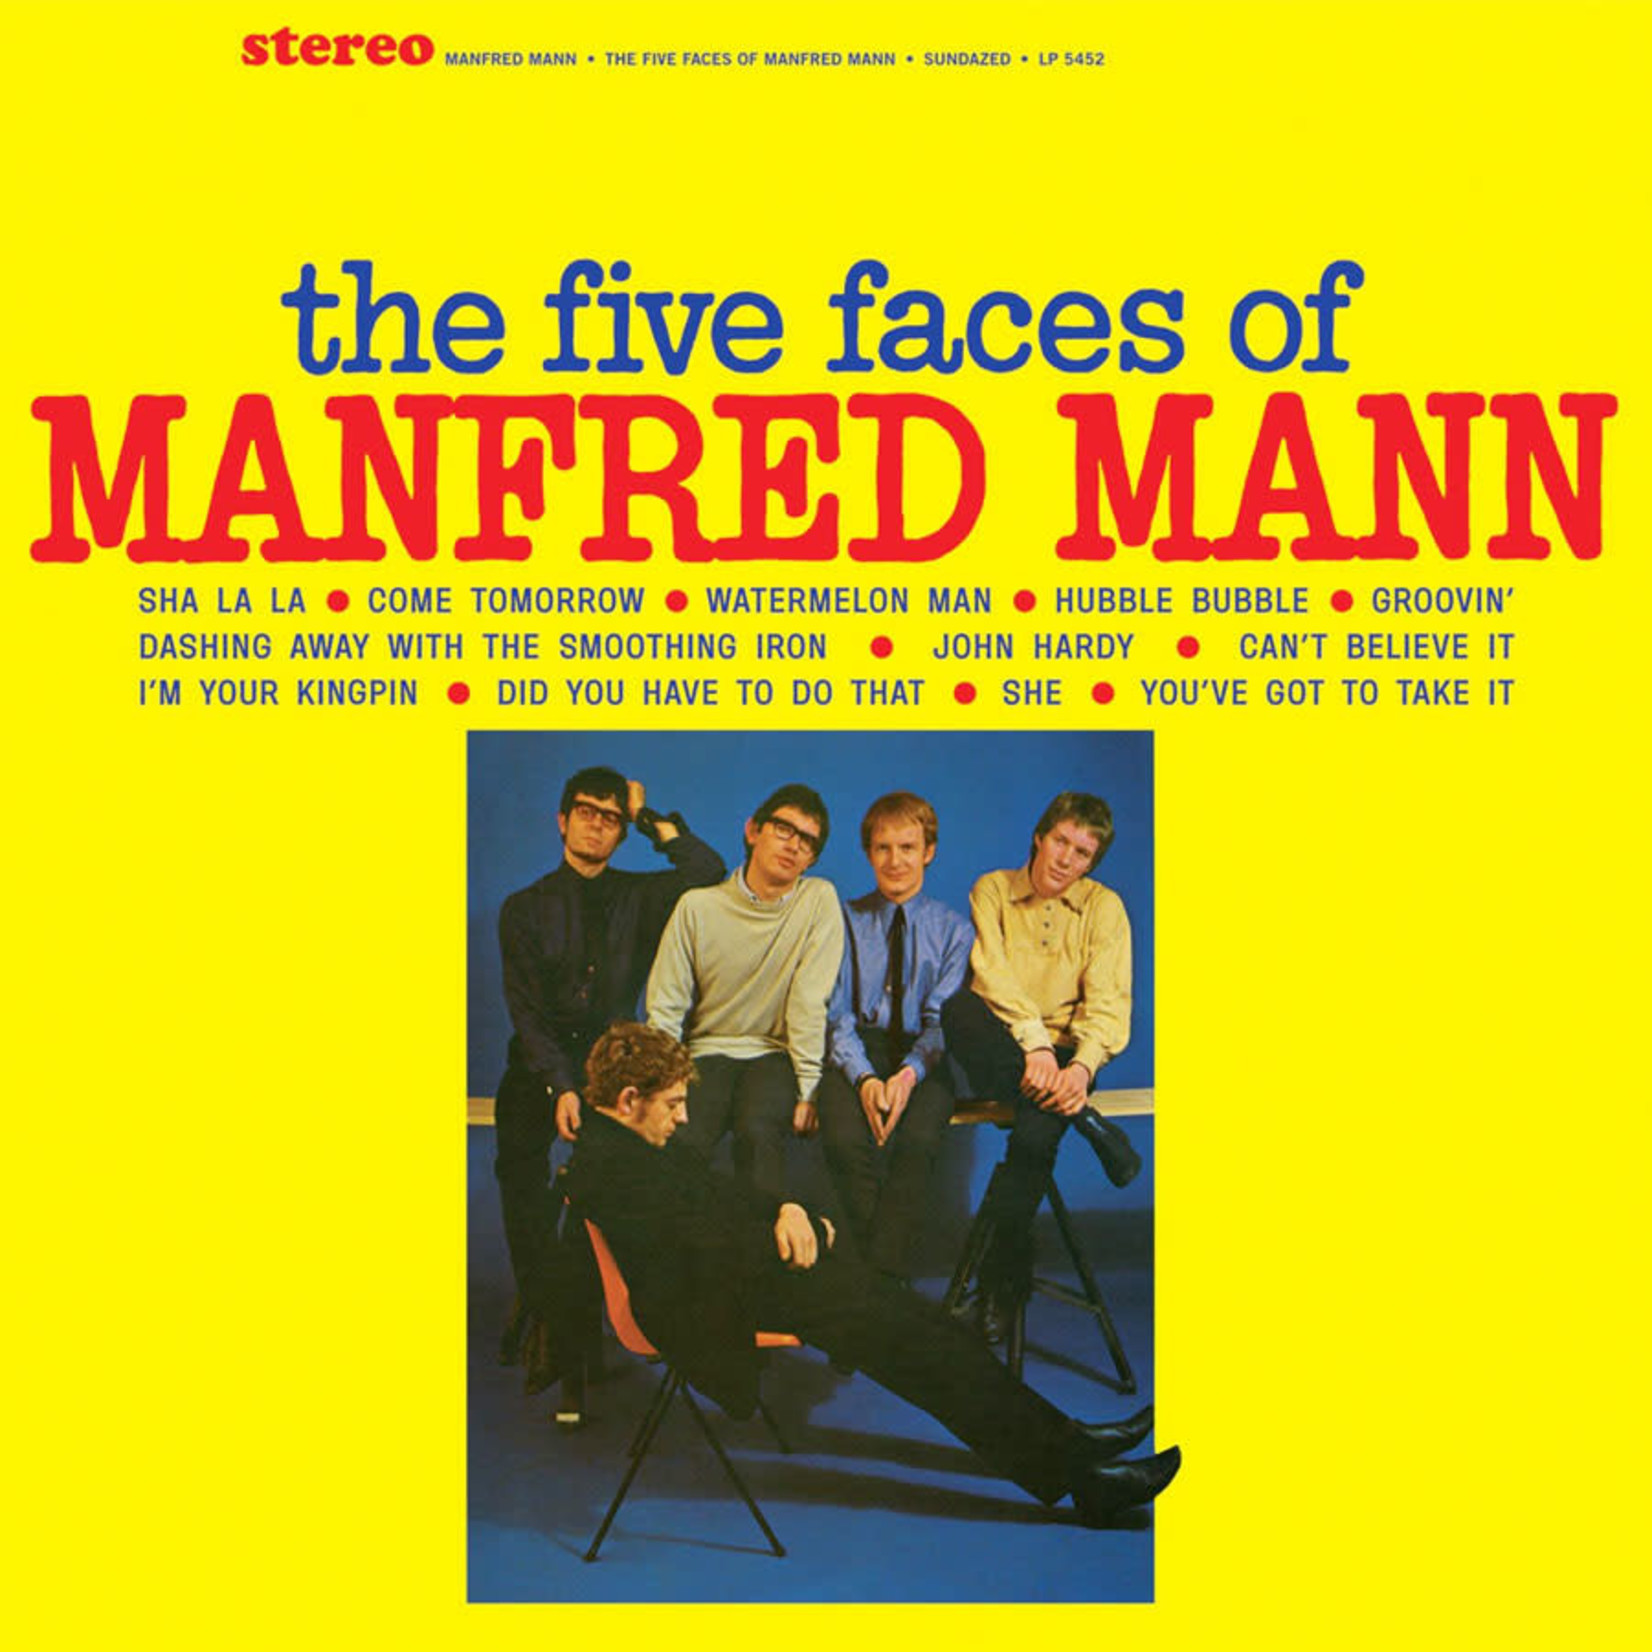 Vinyl Manfred Mann - The Five Faces of Manfred Mann